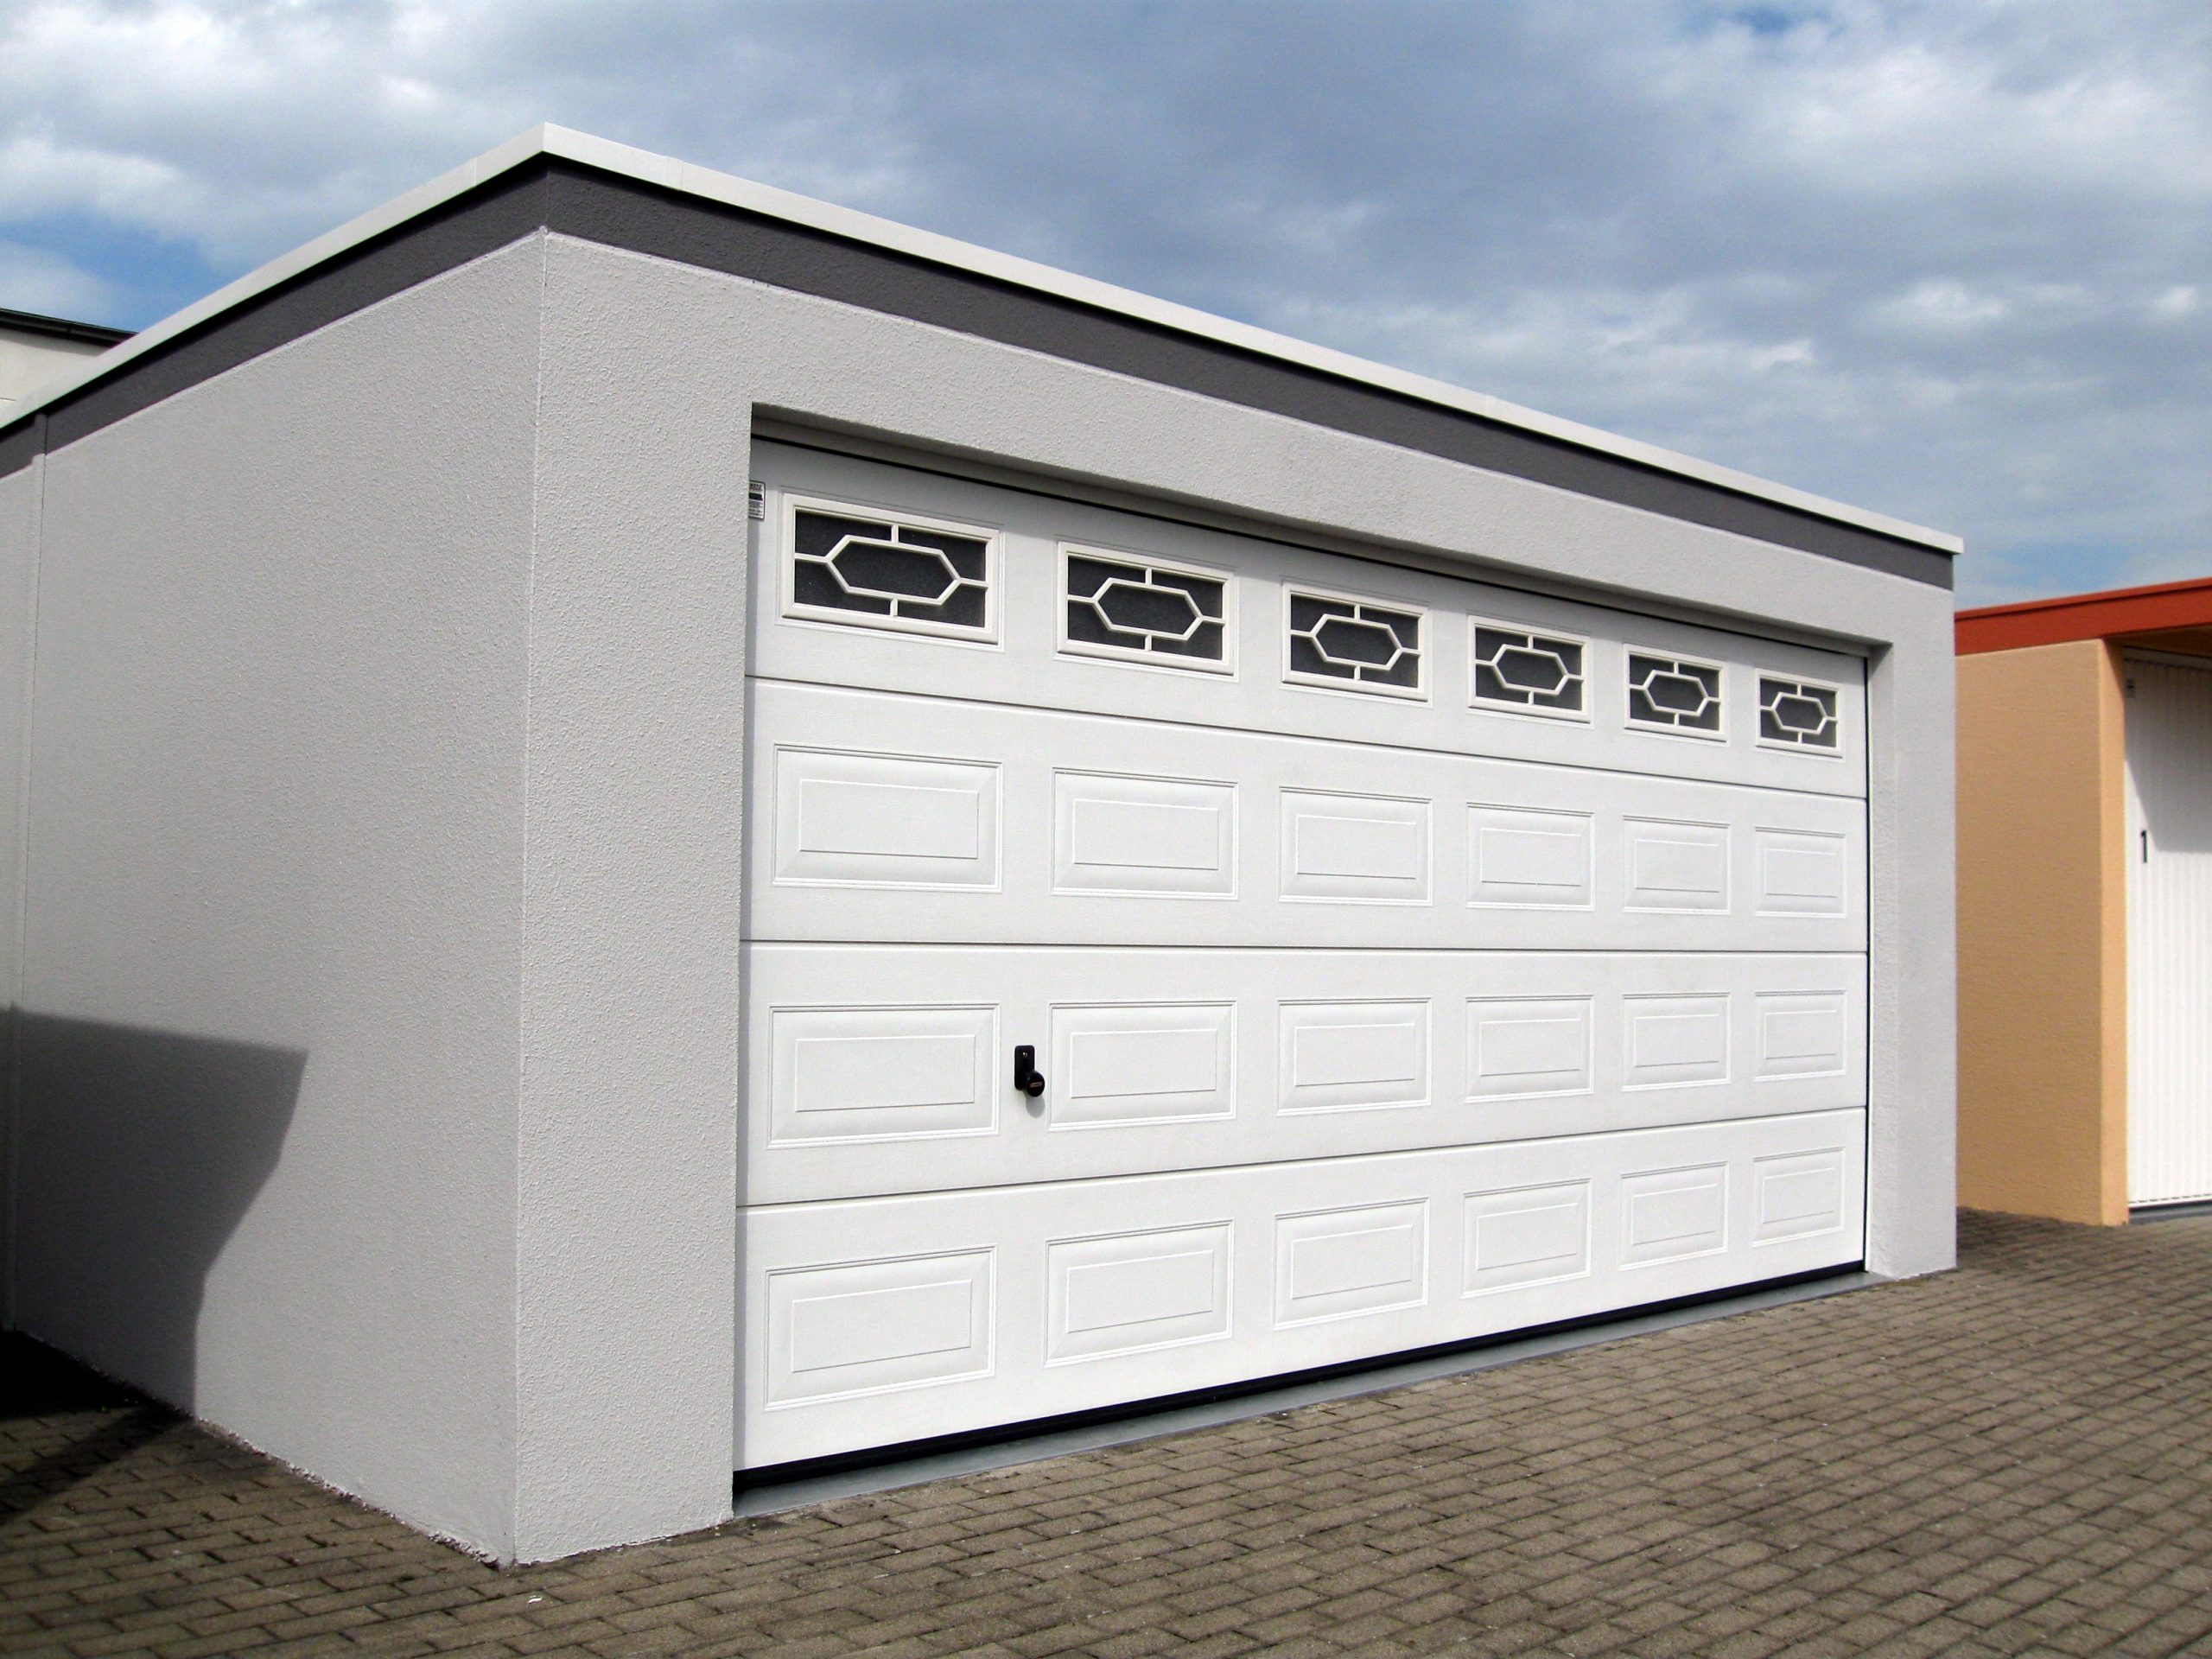 Garage Door Repair Bergen County NJ : All Information and Services